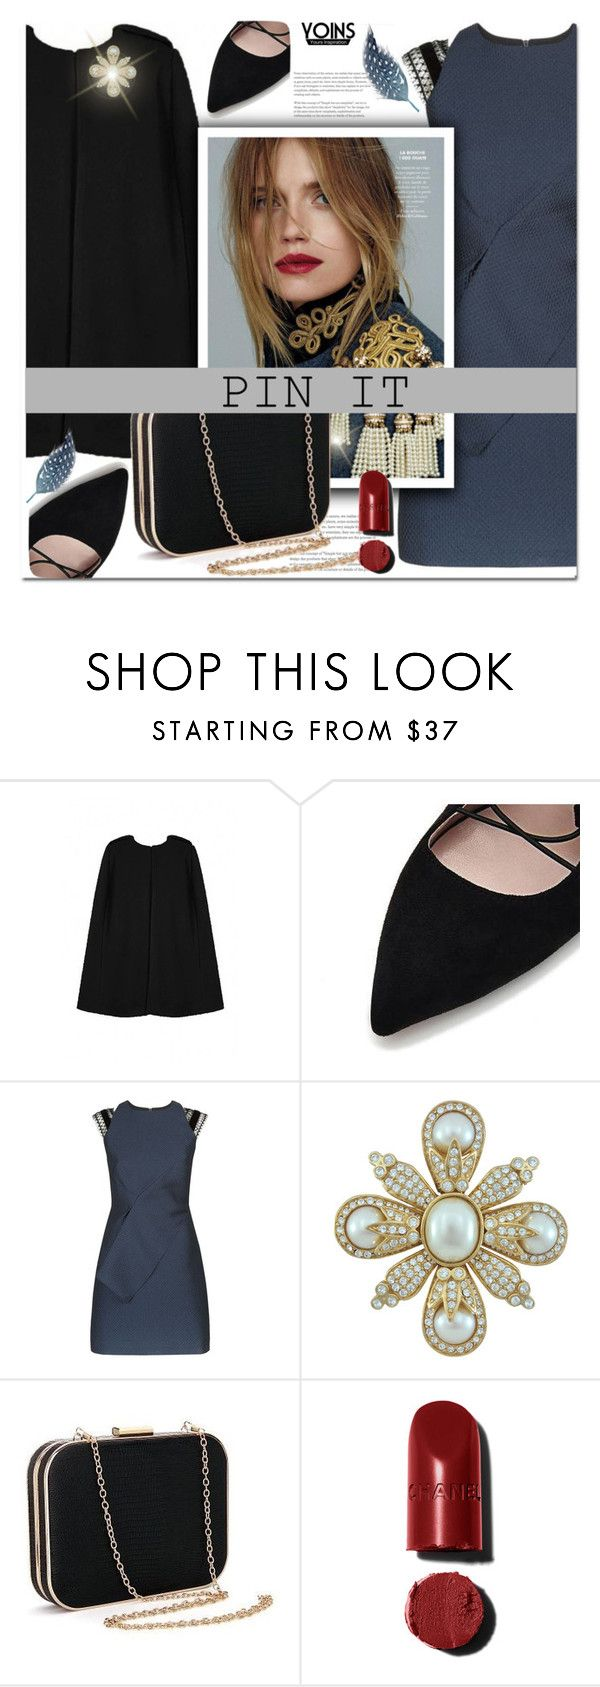 """YOINS(YOUR INSPIRATION)"" by sweta-gupta ❤ liked on Polyvore featuring Roland Mouret, Ciner, pins, yoins, yoinscollection and loveyoins"